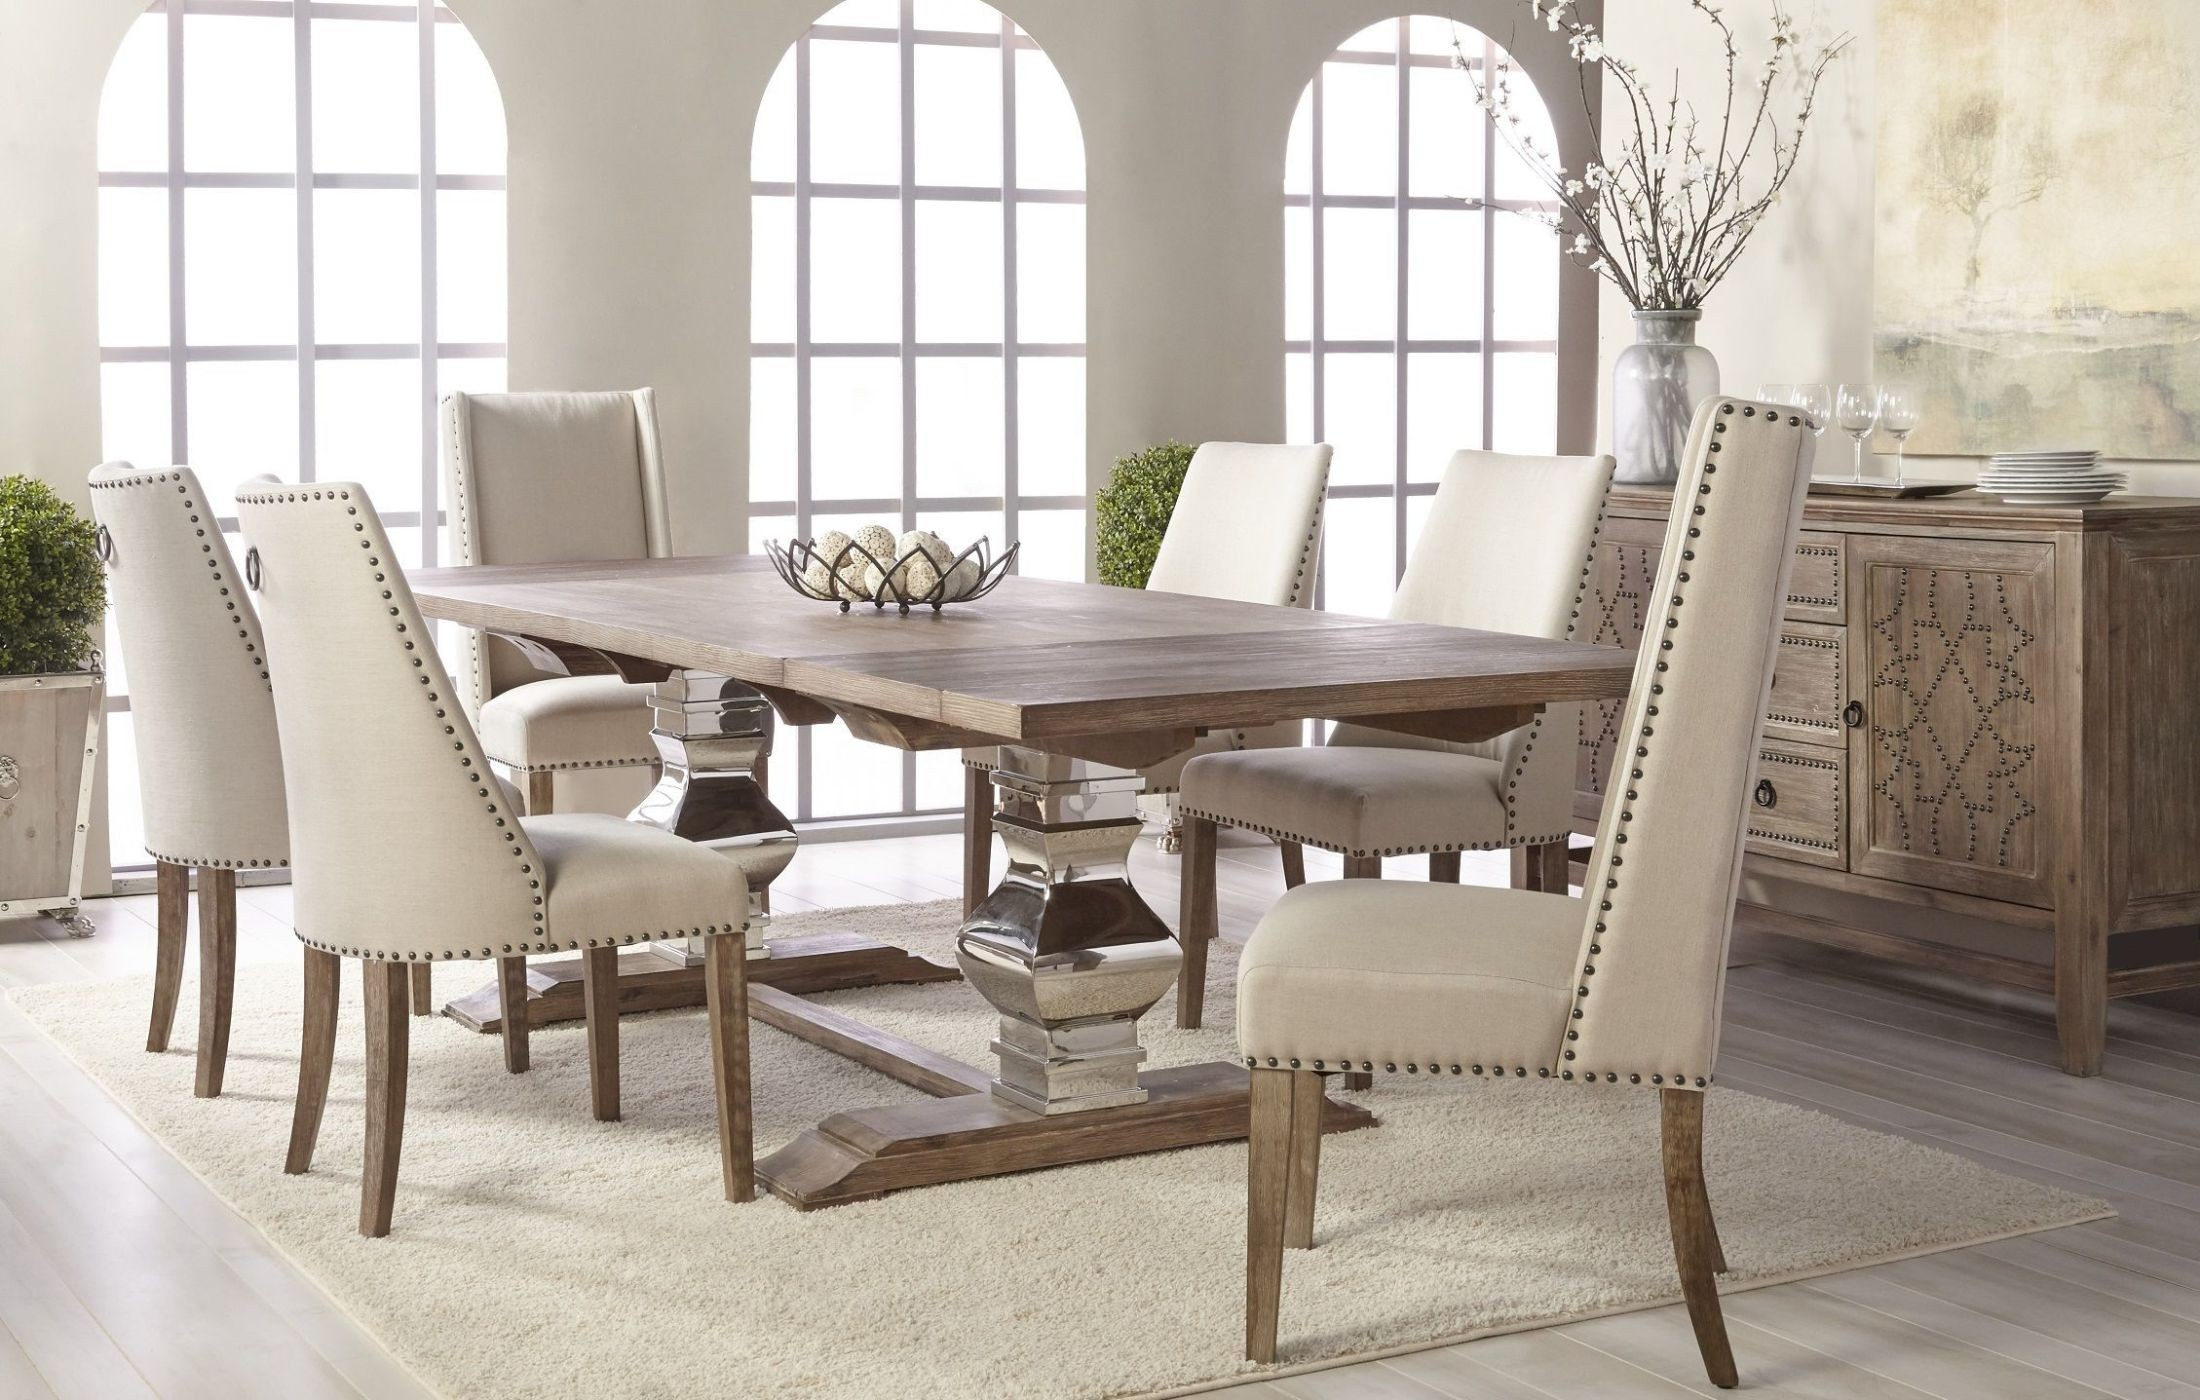 manor gray wash extendable dining room set with traditions dining chairs from orient express. Black Bedroom Furniture Sets. Home Design Ideas